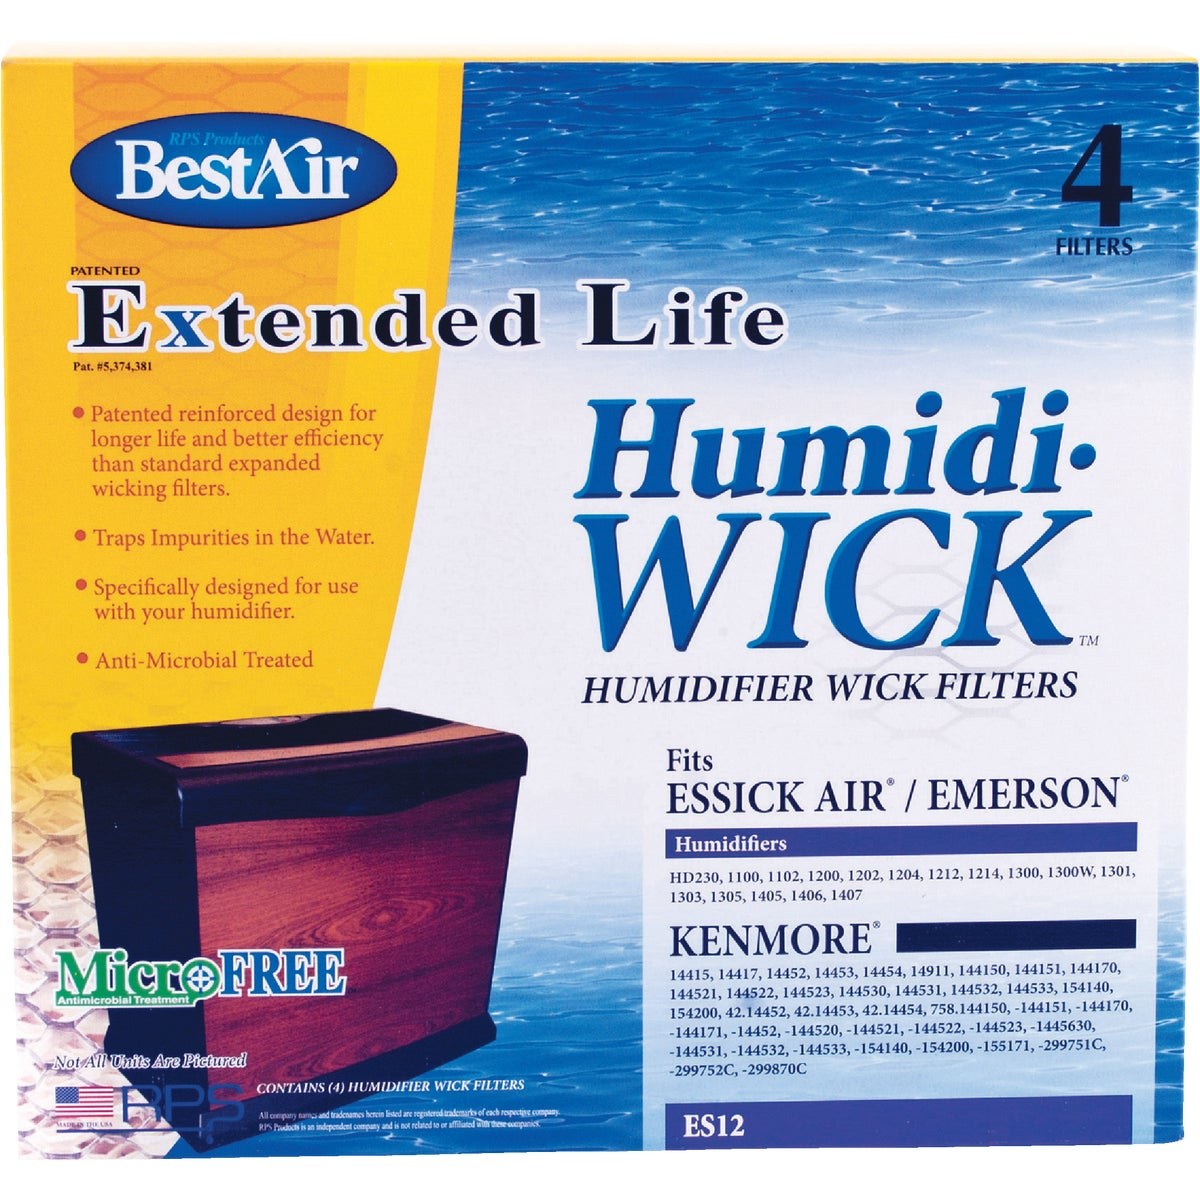 HUMIDIFIER WICK FILTER - ES12-2 by Rps Products Inc